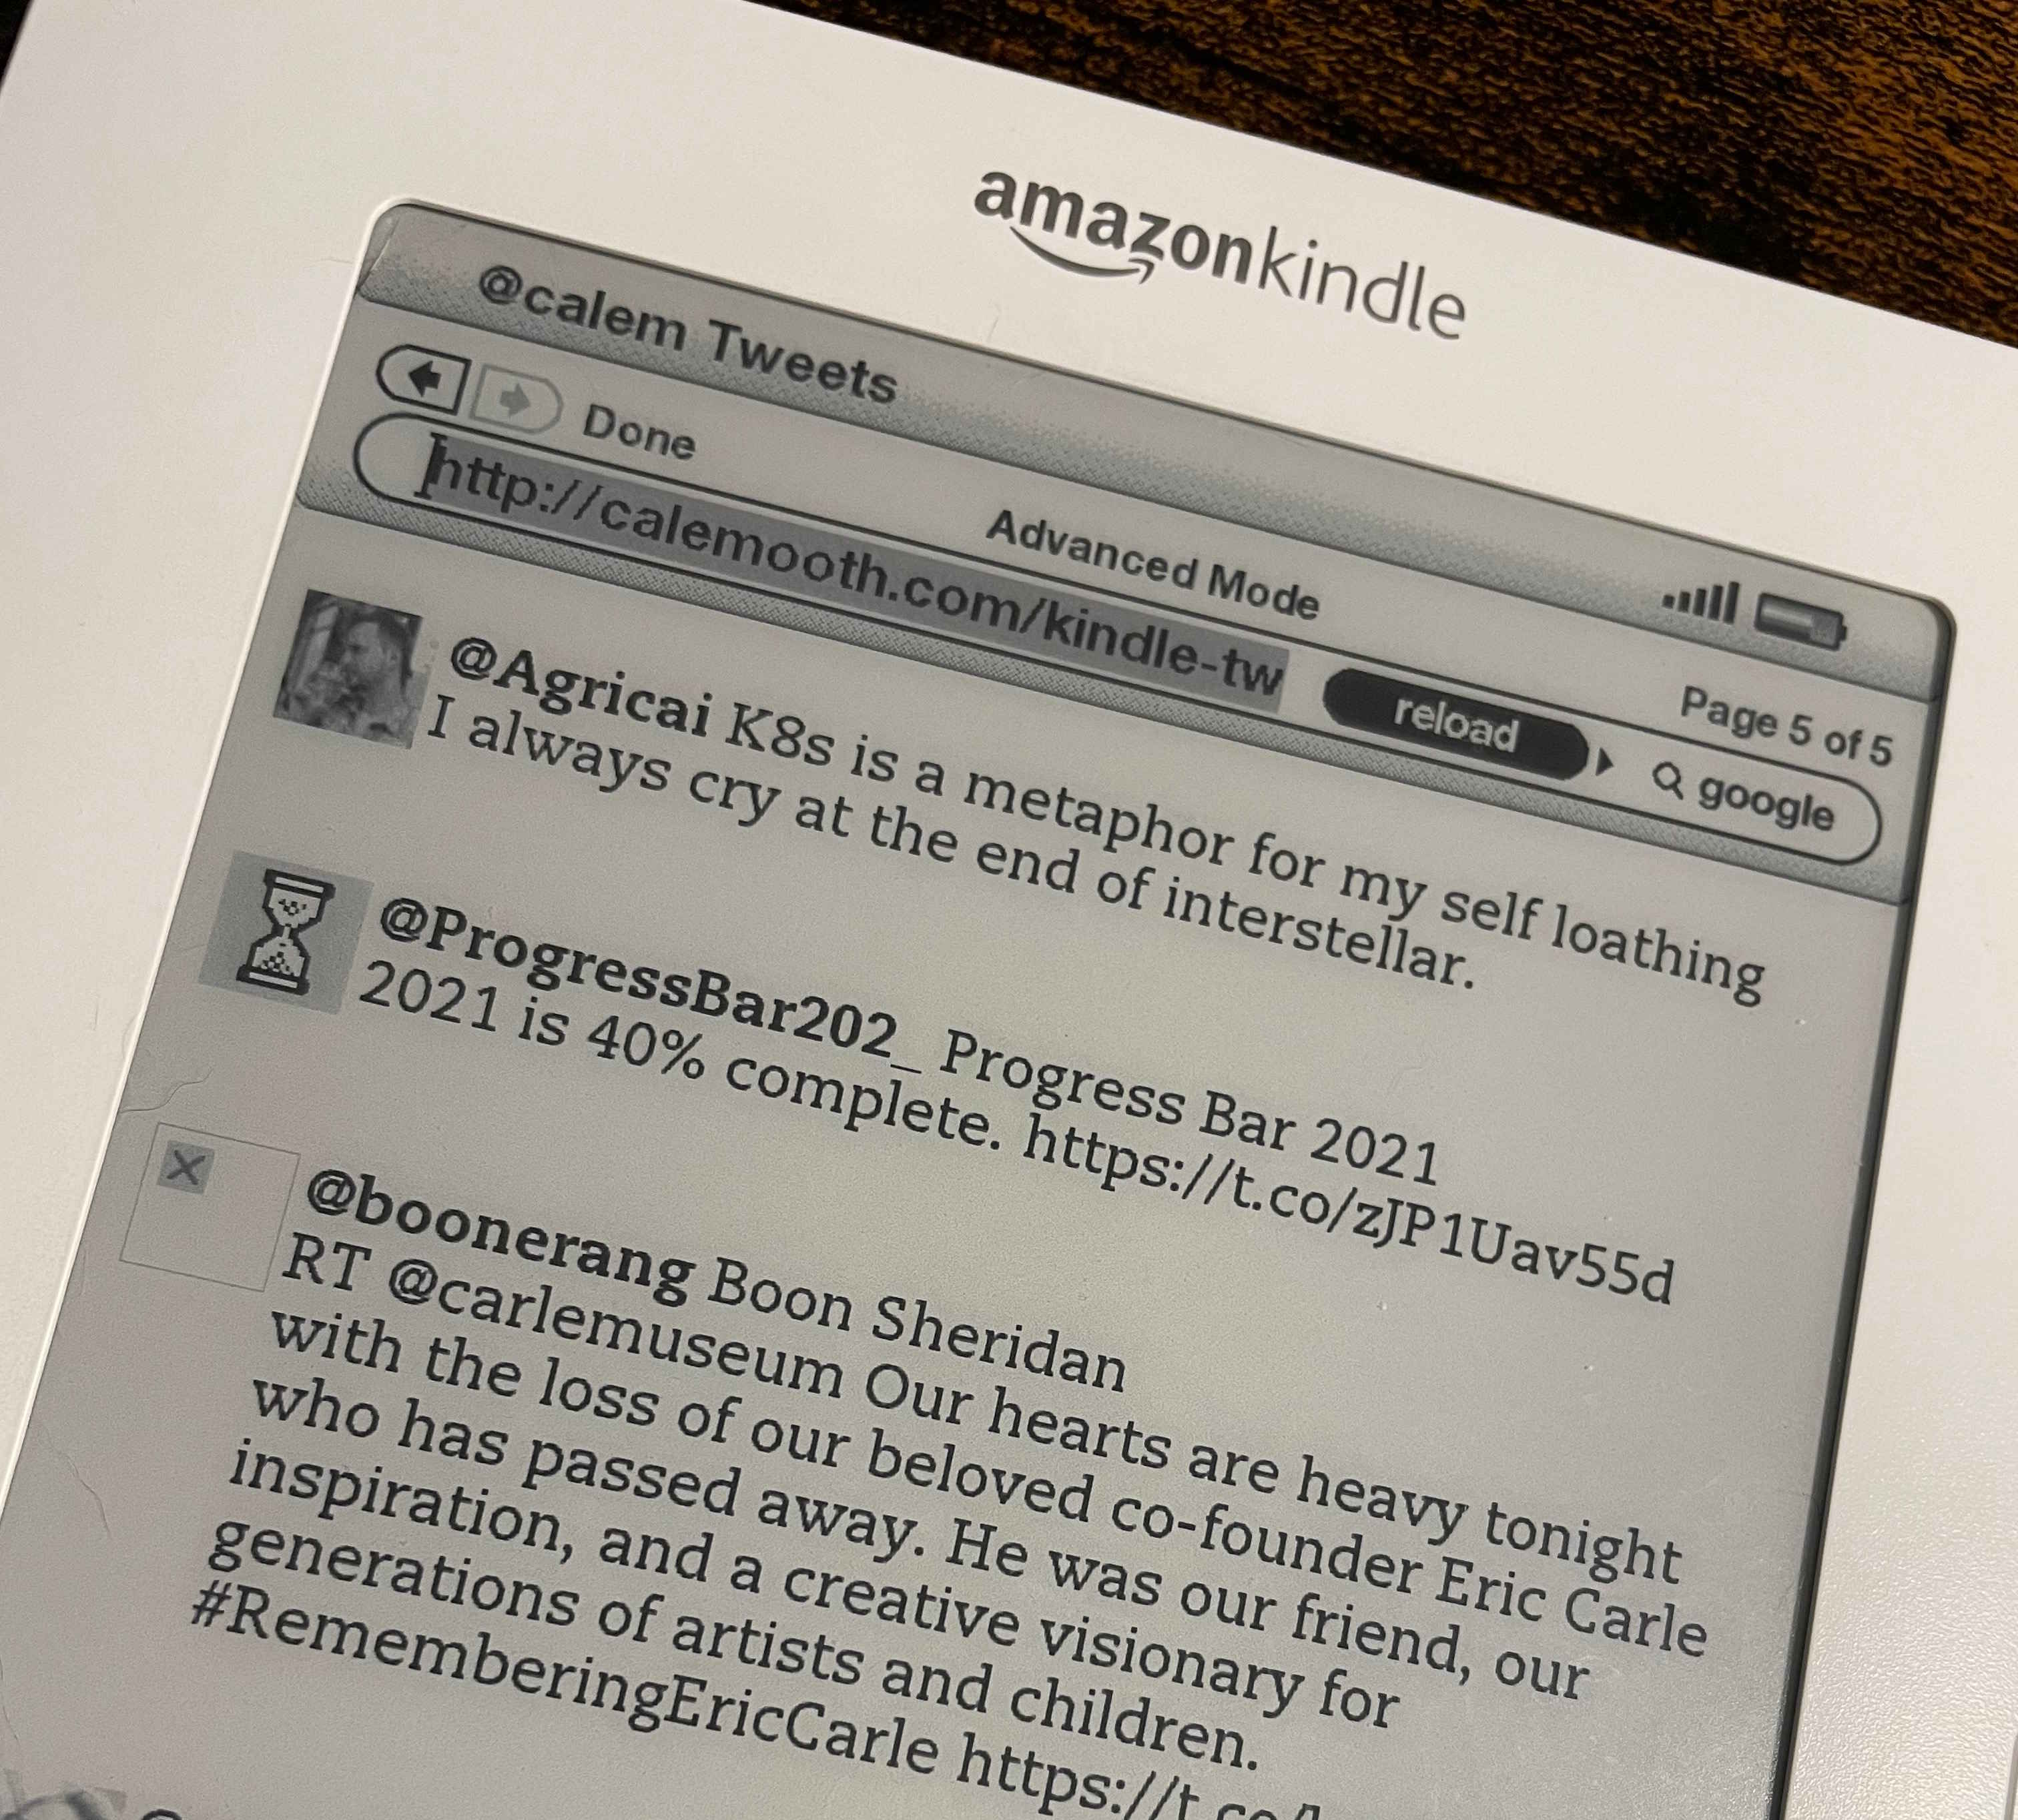 Second Generation Amazon Kindle with Twitter